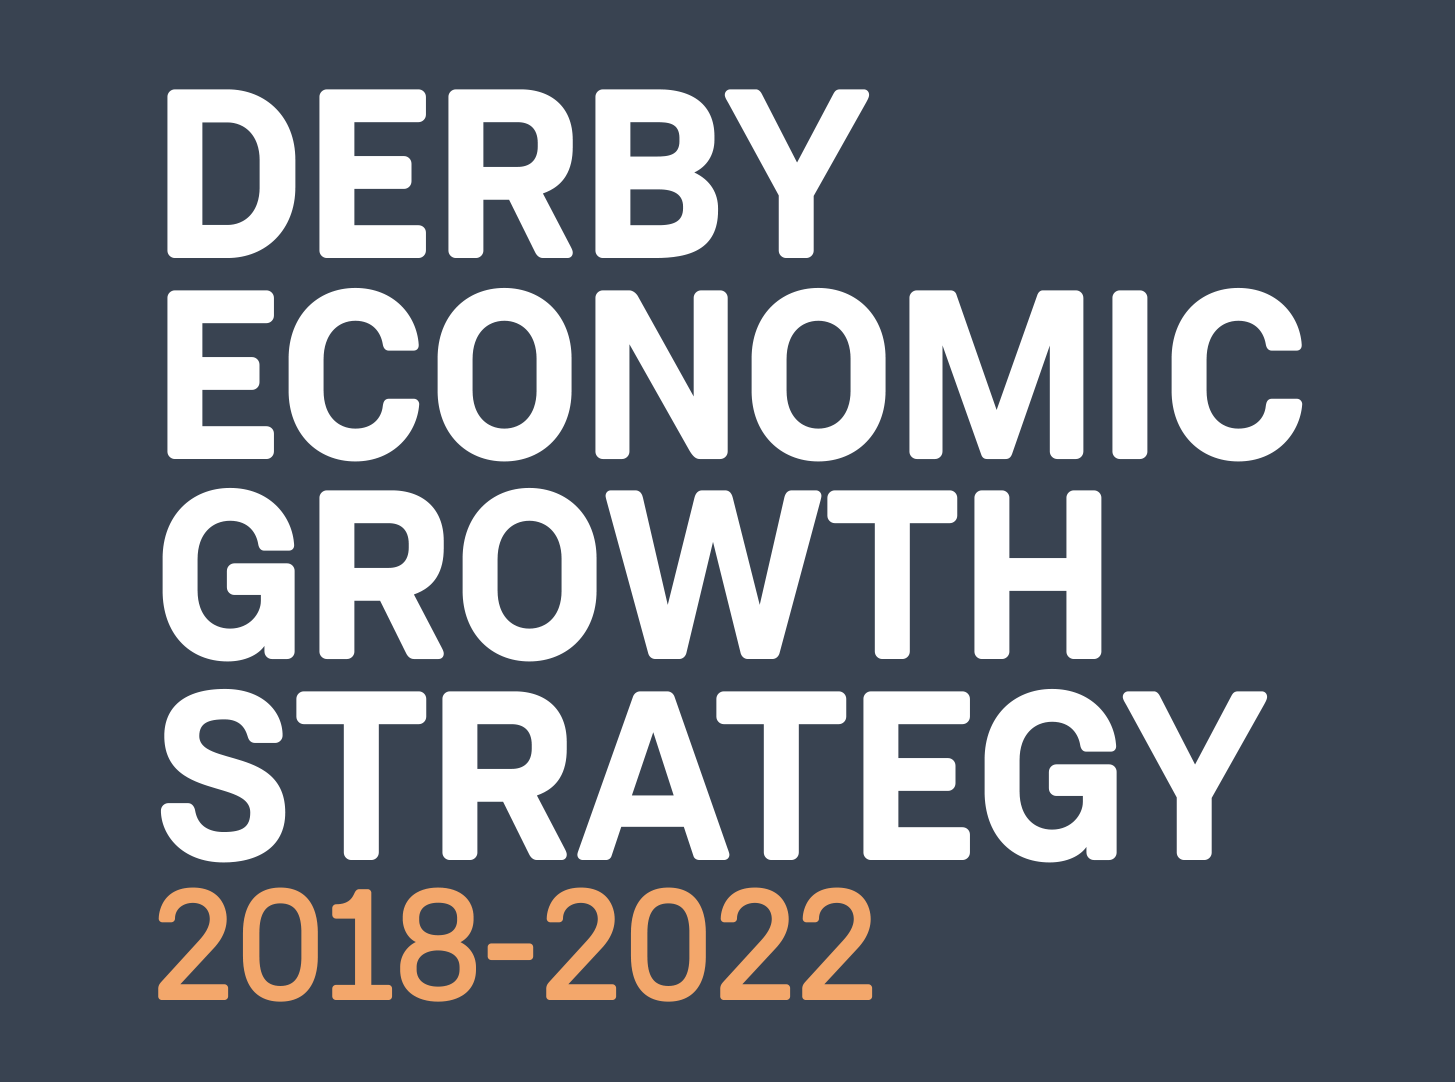 Four Pillars: Derby Economic Growth Strategy 2017-2022